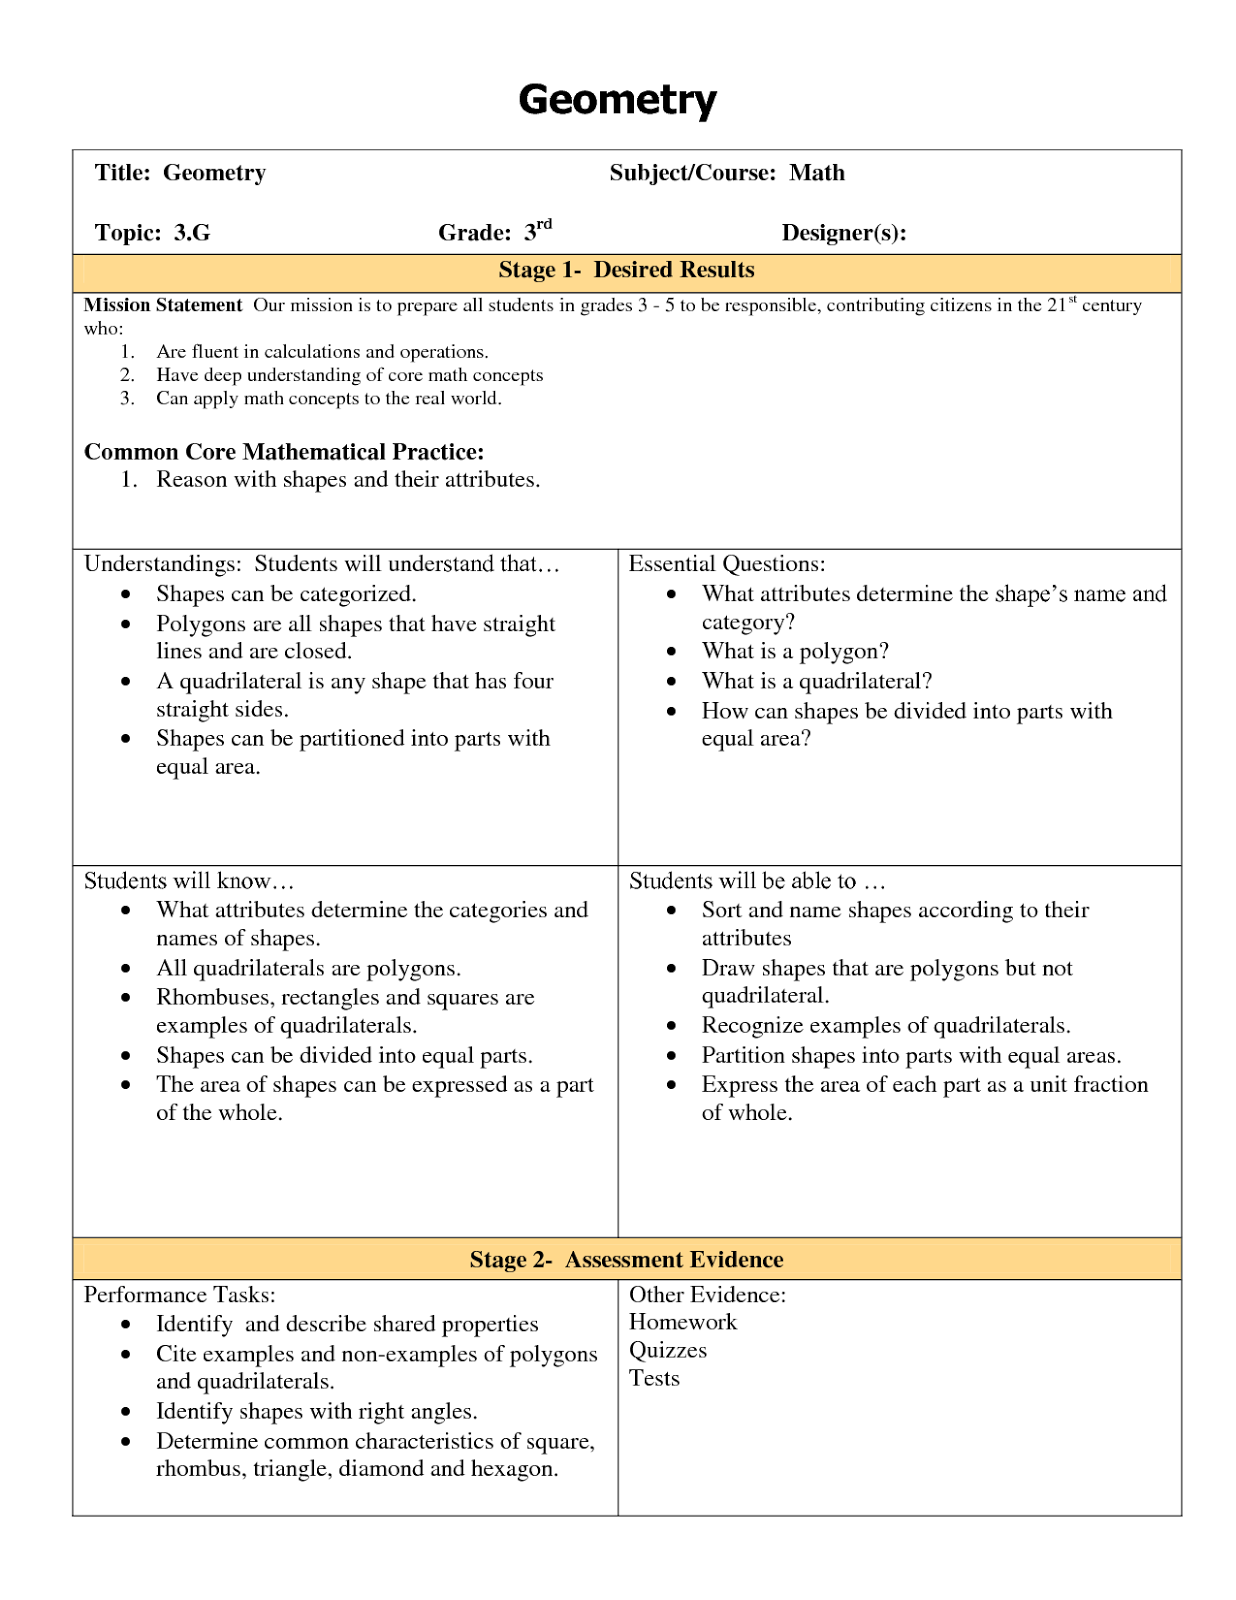 ubd lesson plan for mthematics 2 Ubd: design team resources search this site home  lesson plan resources standards  sample ubd units math 6-12 selection file type icon file name description.